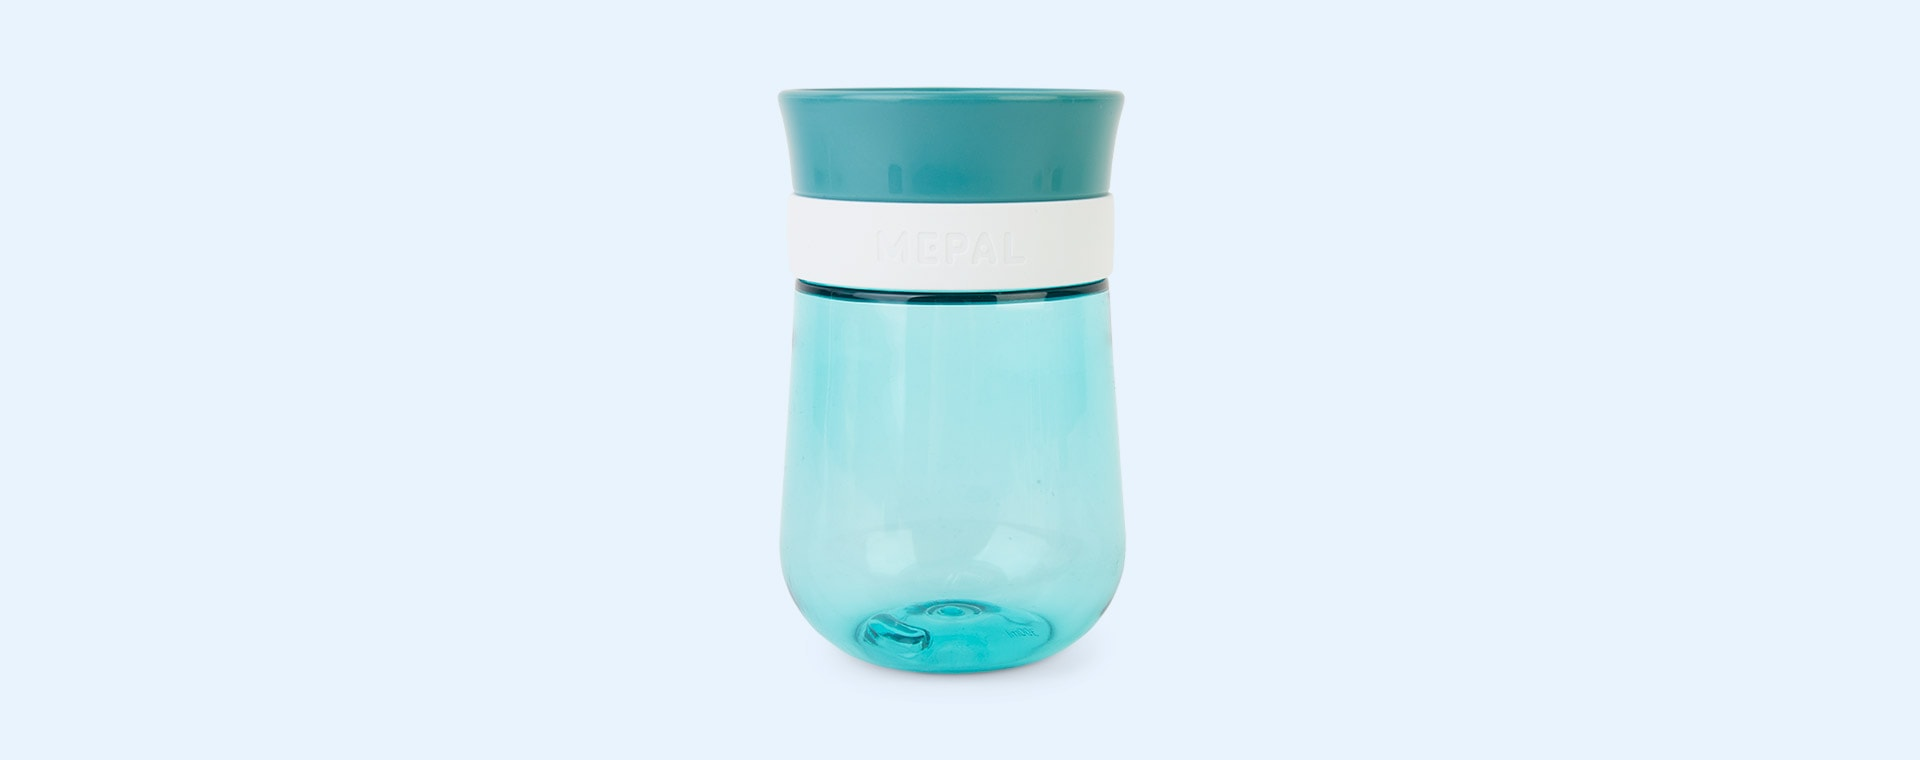 Deep Turquoise Mepal 360° Trainer Cup Mio